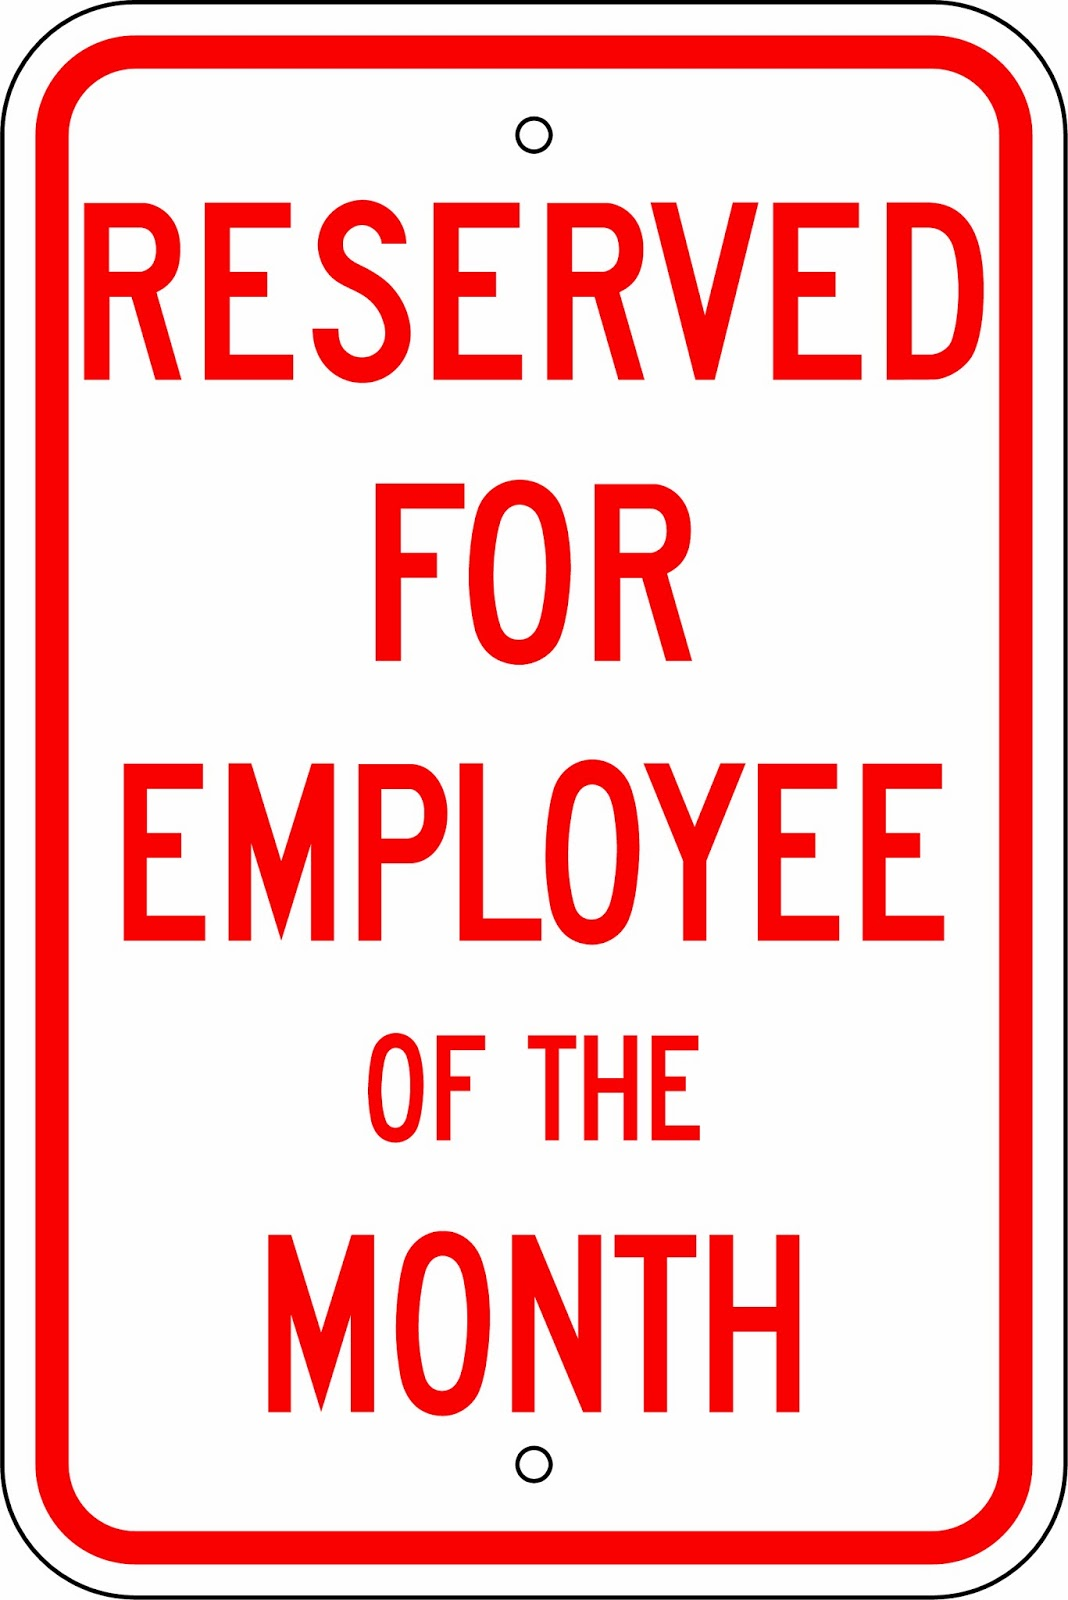 Employee Of The Month Quotes  Quotes Of The Day. Retail Clothing Boutique Business Plan. Security Companies Tampa Fl Kitchens U Build. Credit Card Processing Payment Gateway. Best Social Monitoring Tools. Service Air Conditioner Maid Service Maryland. Tango Video Conferencing Sound Business Forms. Dental Assistance Program Paying Nanny Taxes. Everett Downtown Storage Phone Cell Companies